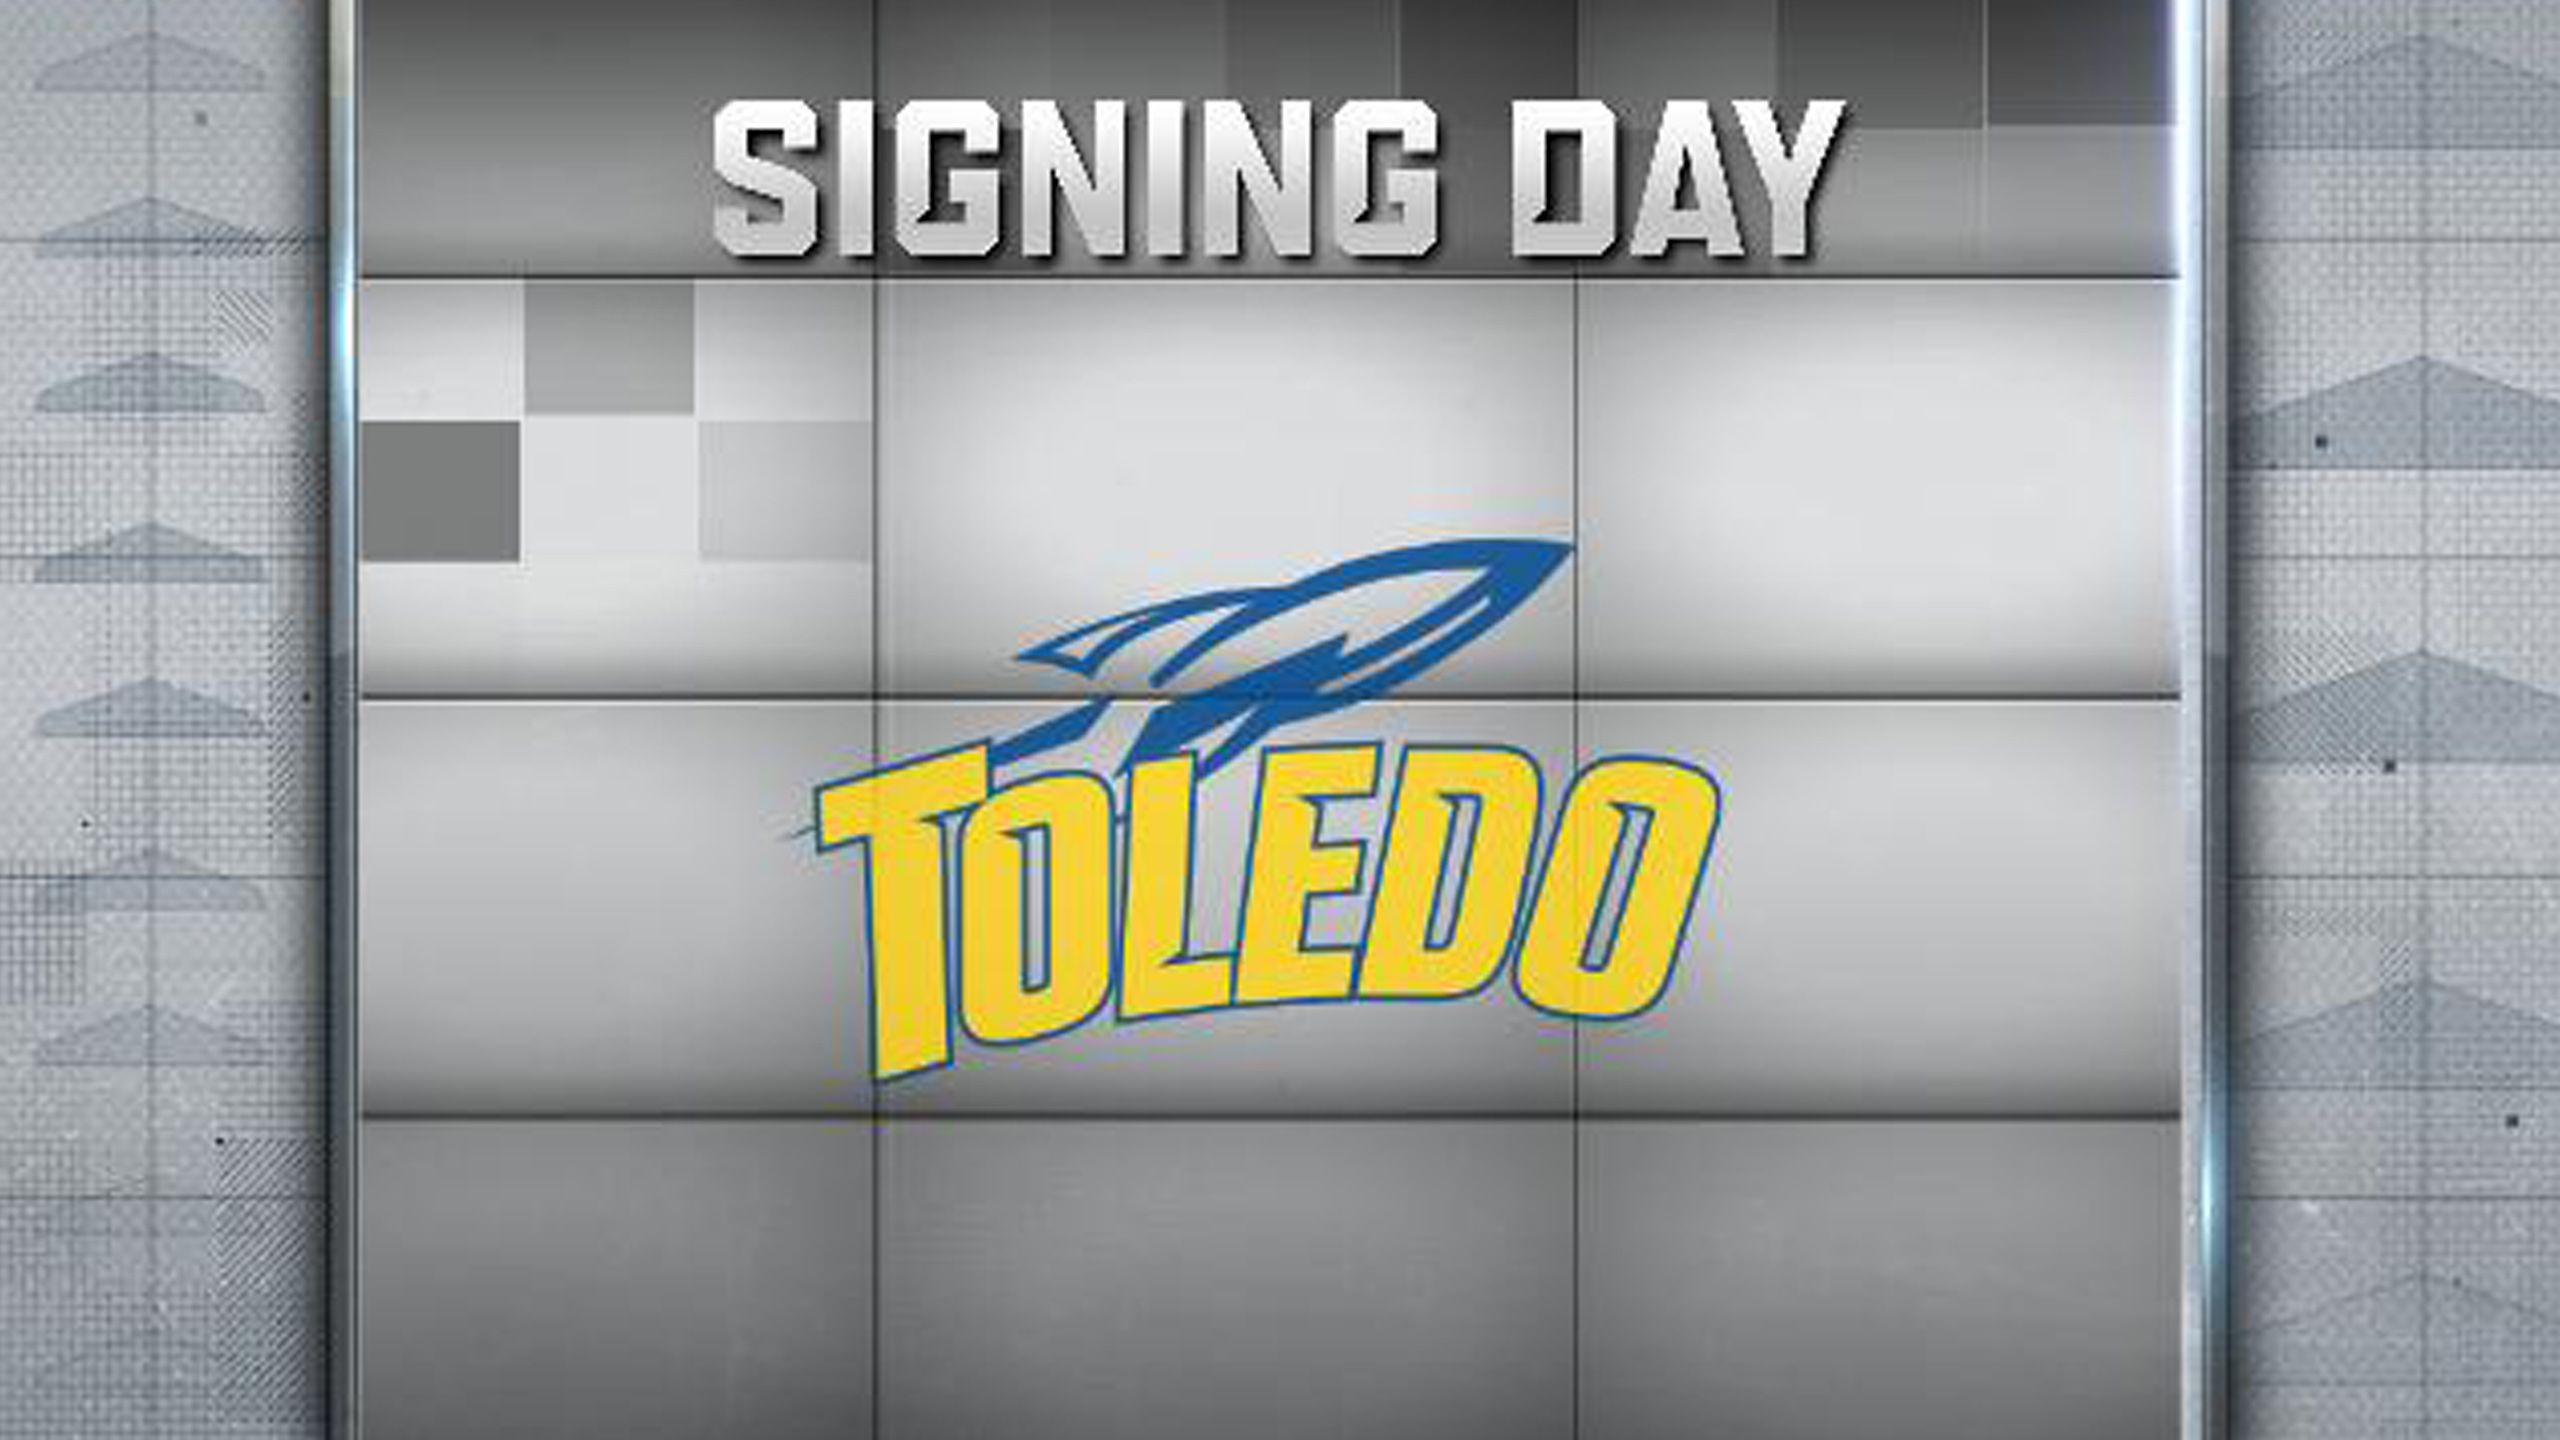 Toledo National Signing Day